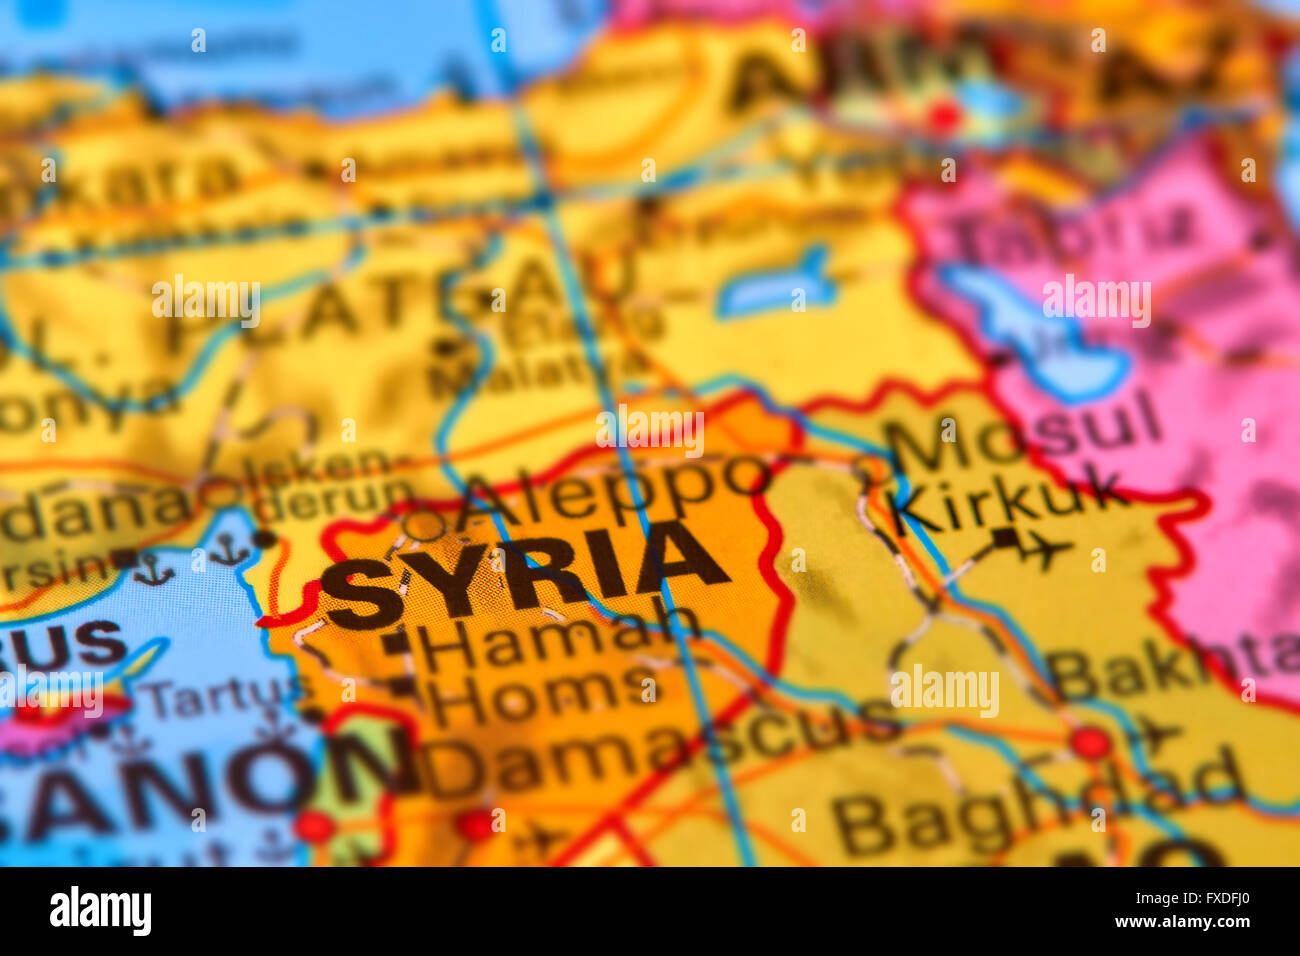 Syria Asian Country On The World Map Stock Photo 102330536 Alamy